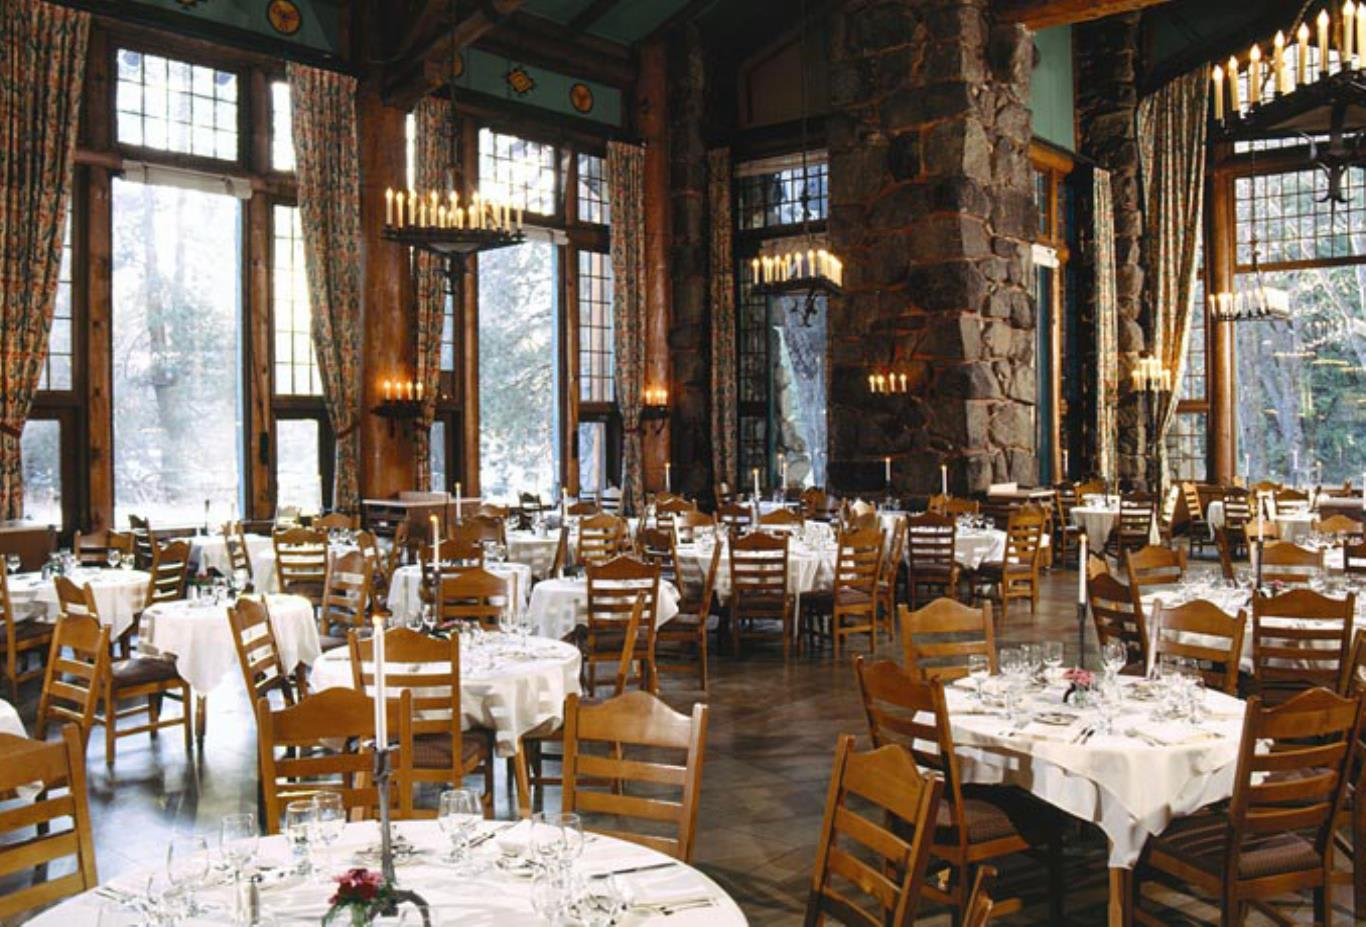 The Majestic Dining Room